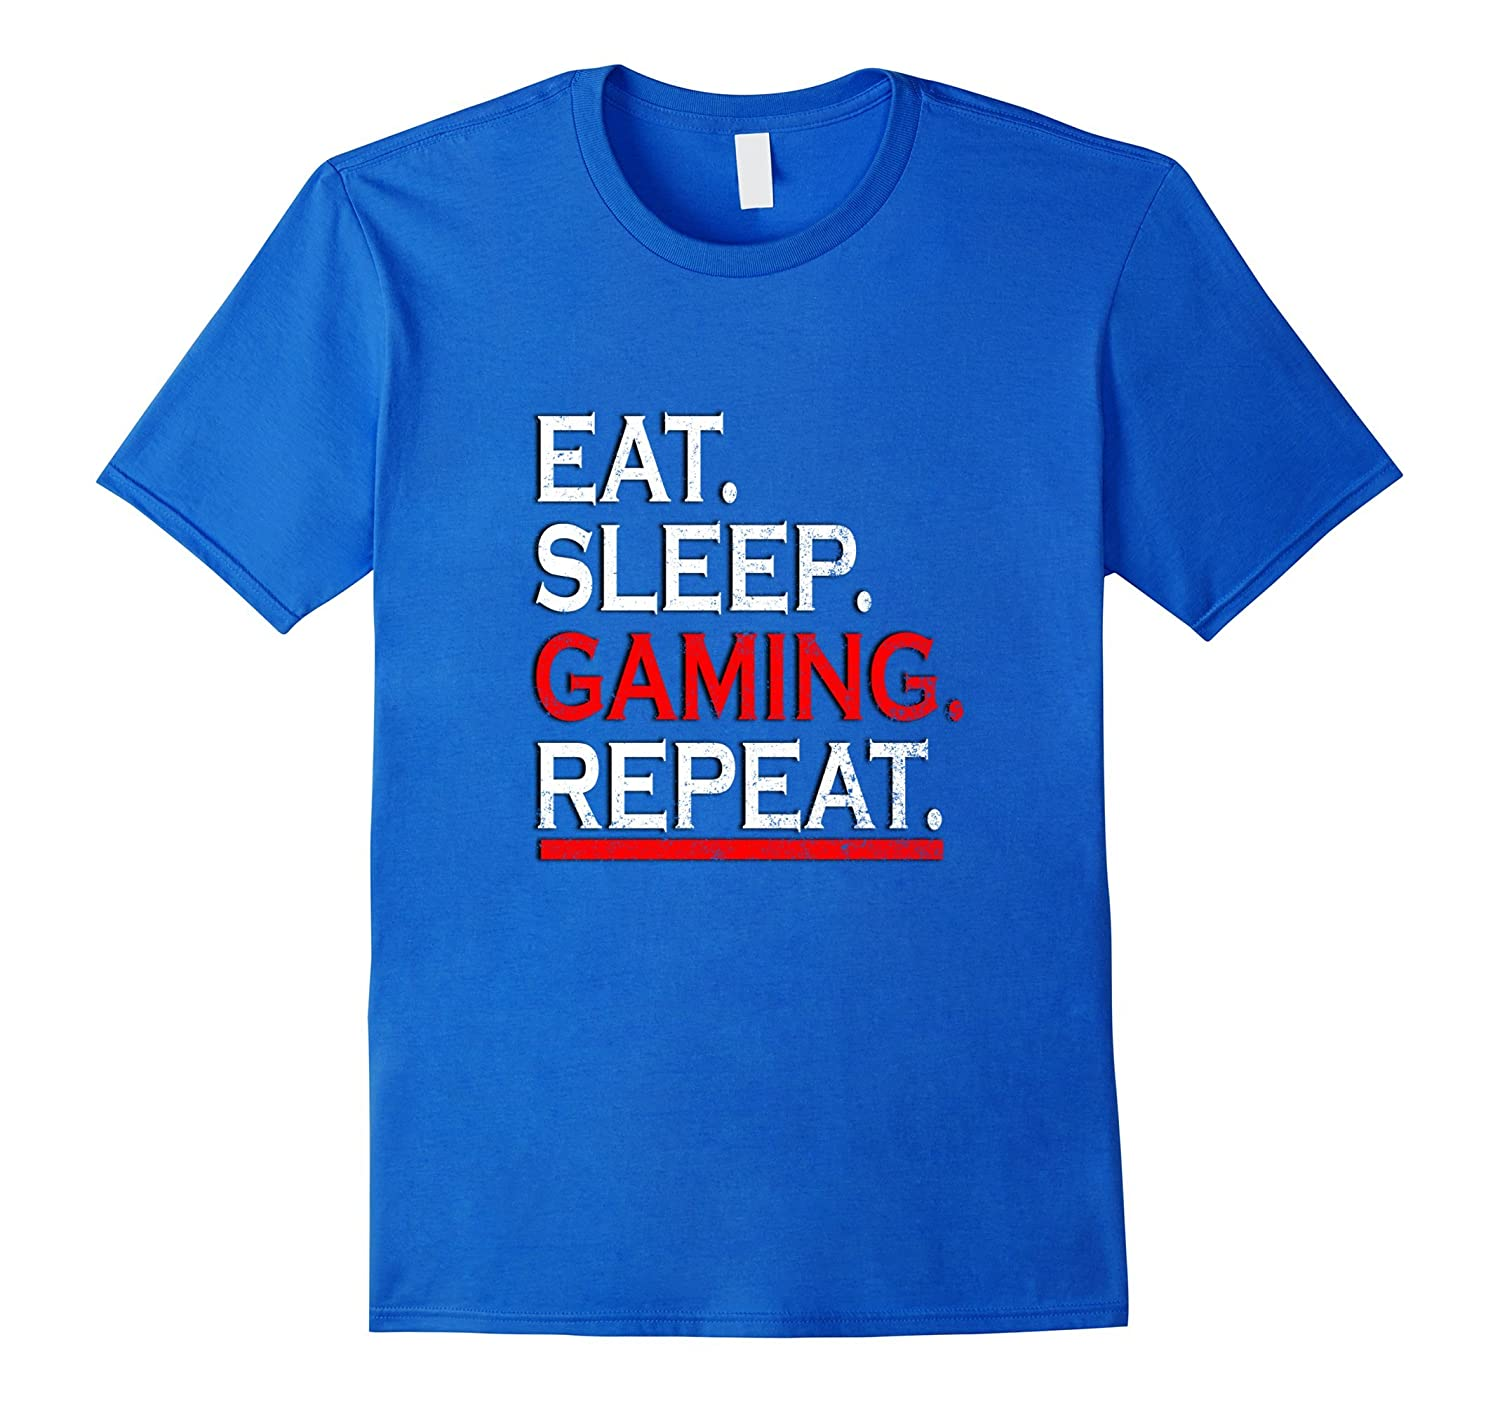 EAT SLEEP GAMING REPEAT T-SHIRT-TD